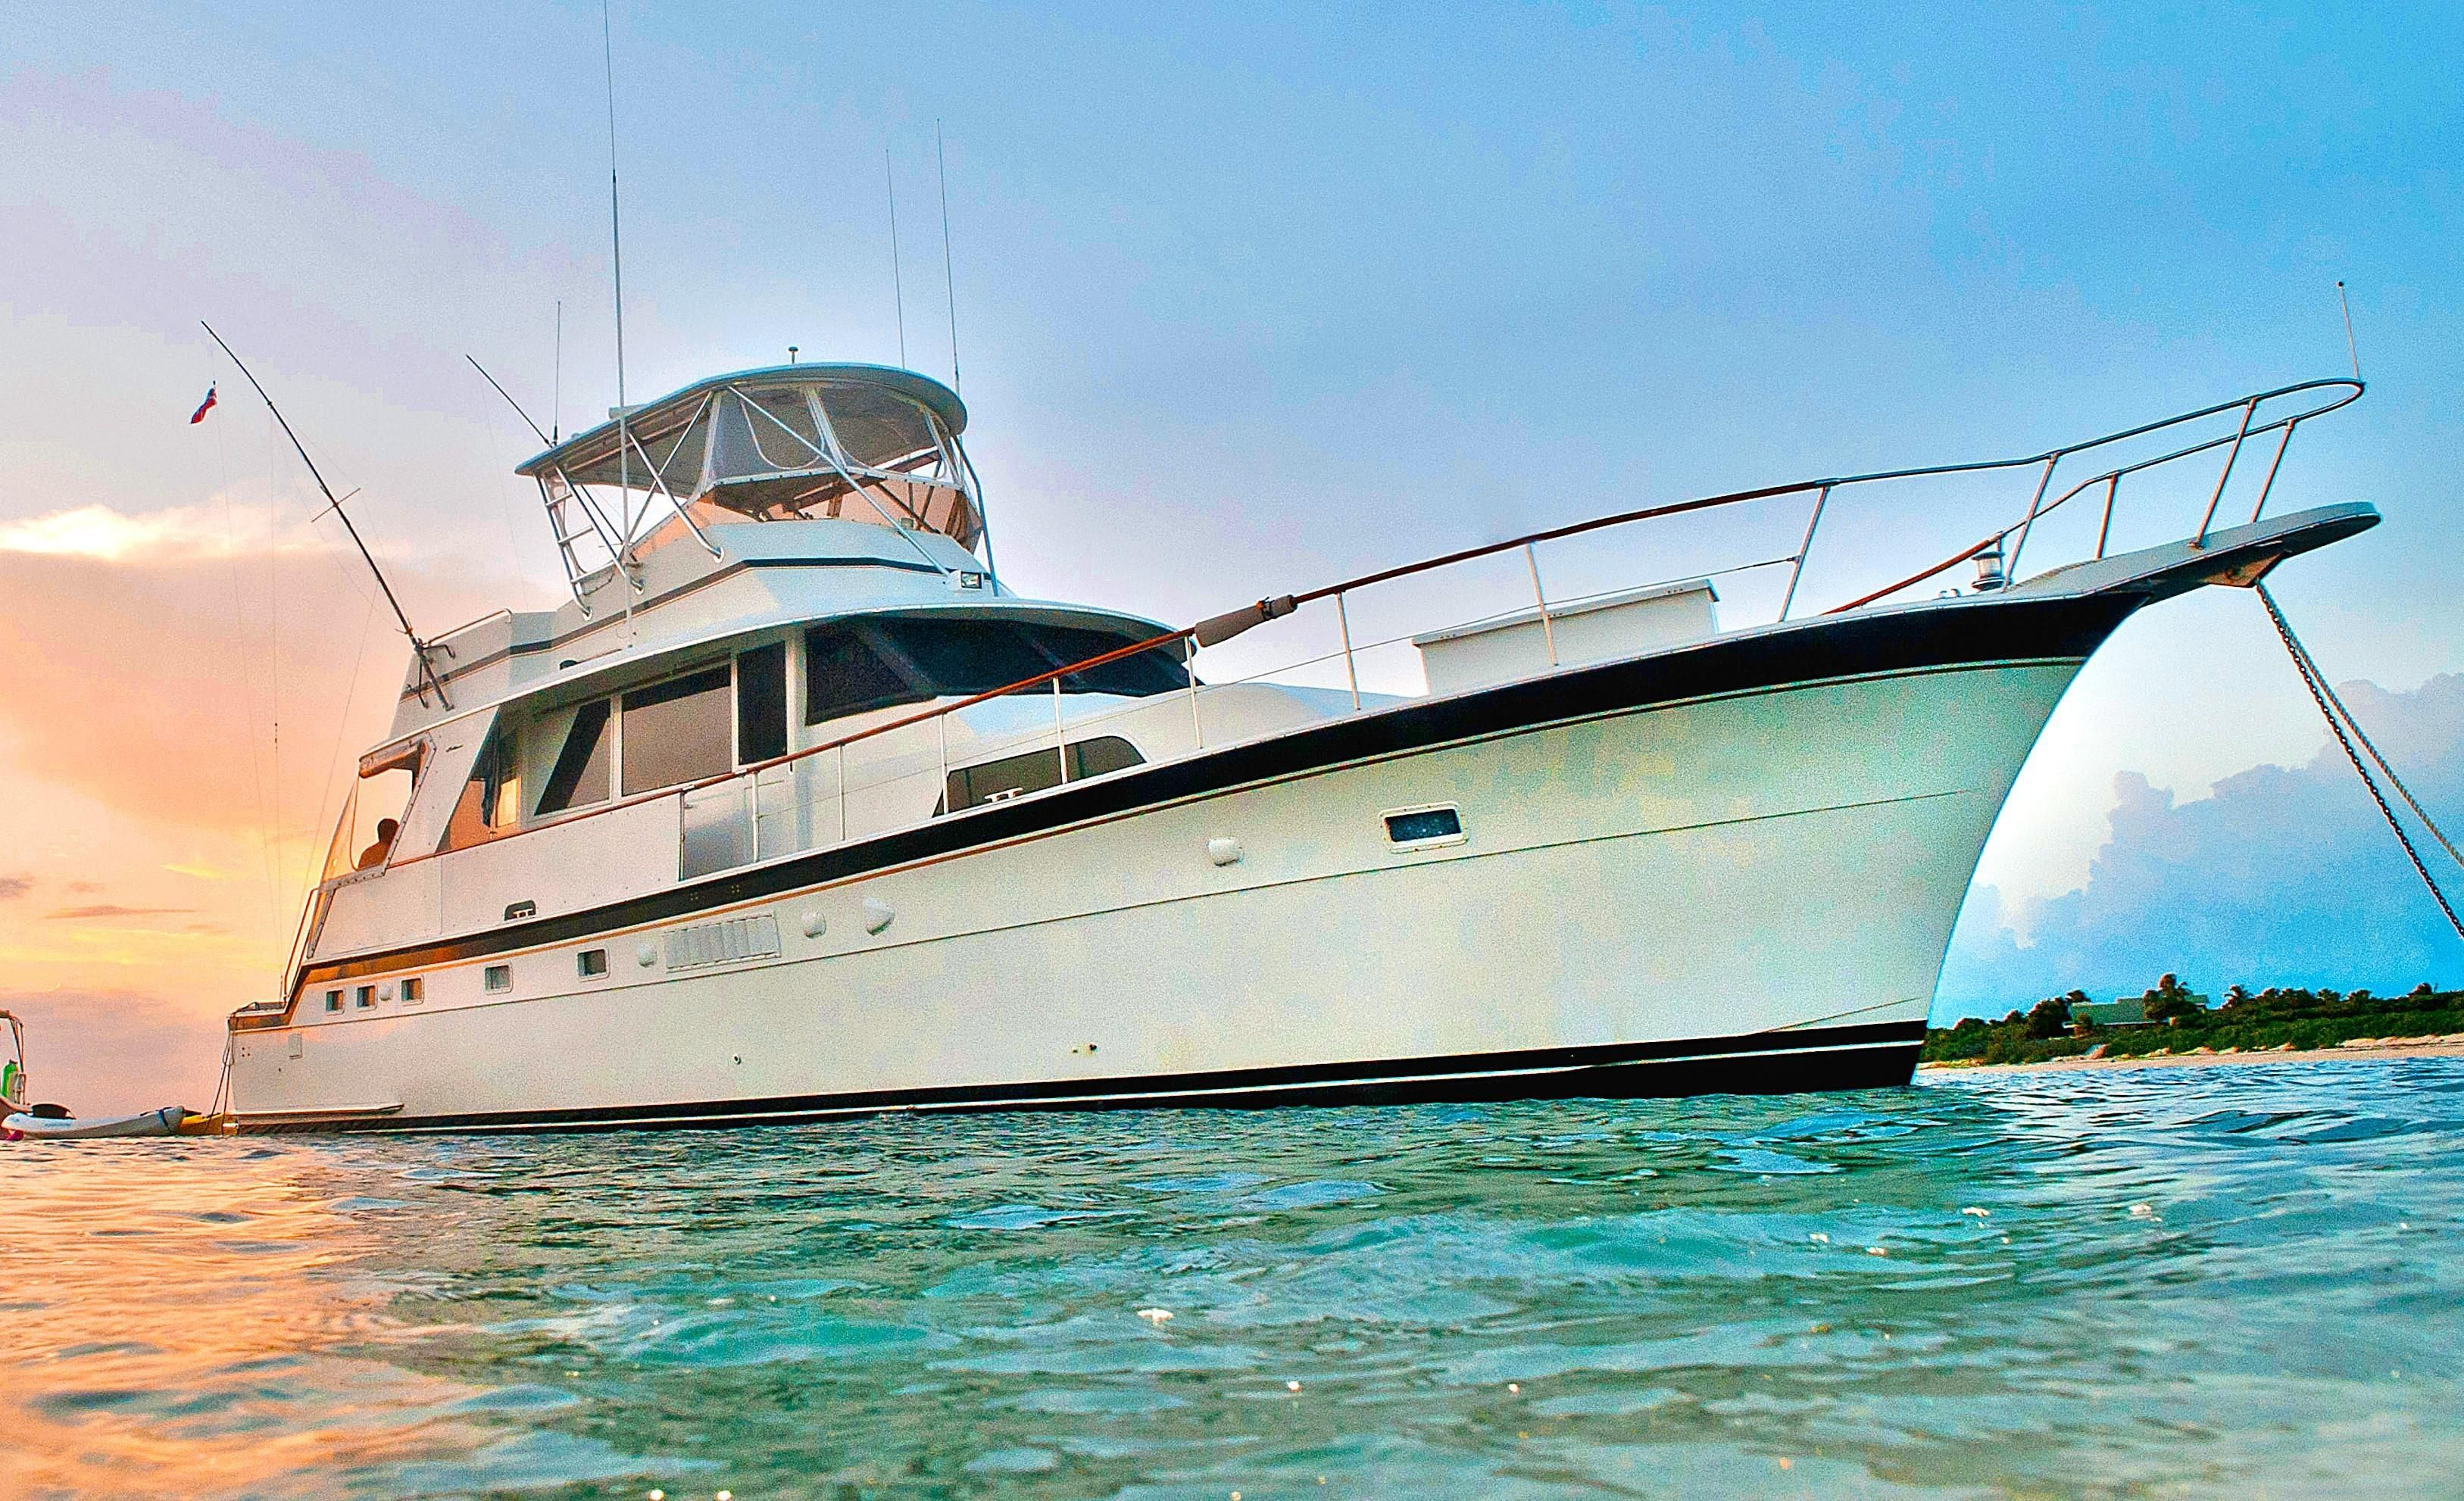 1975 Hatteras Yacht Fisherman Power boat for sale, located